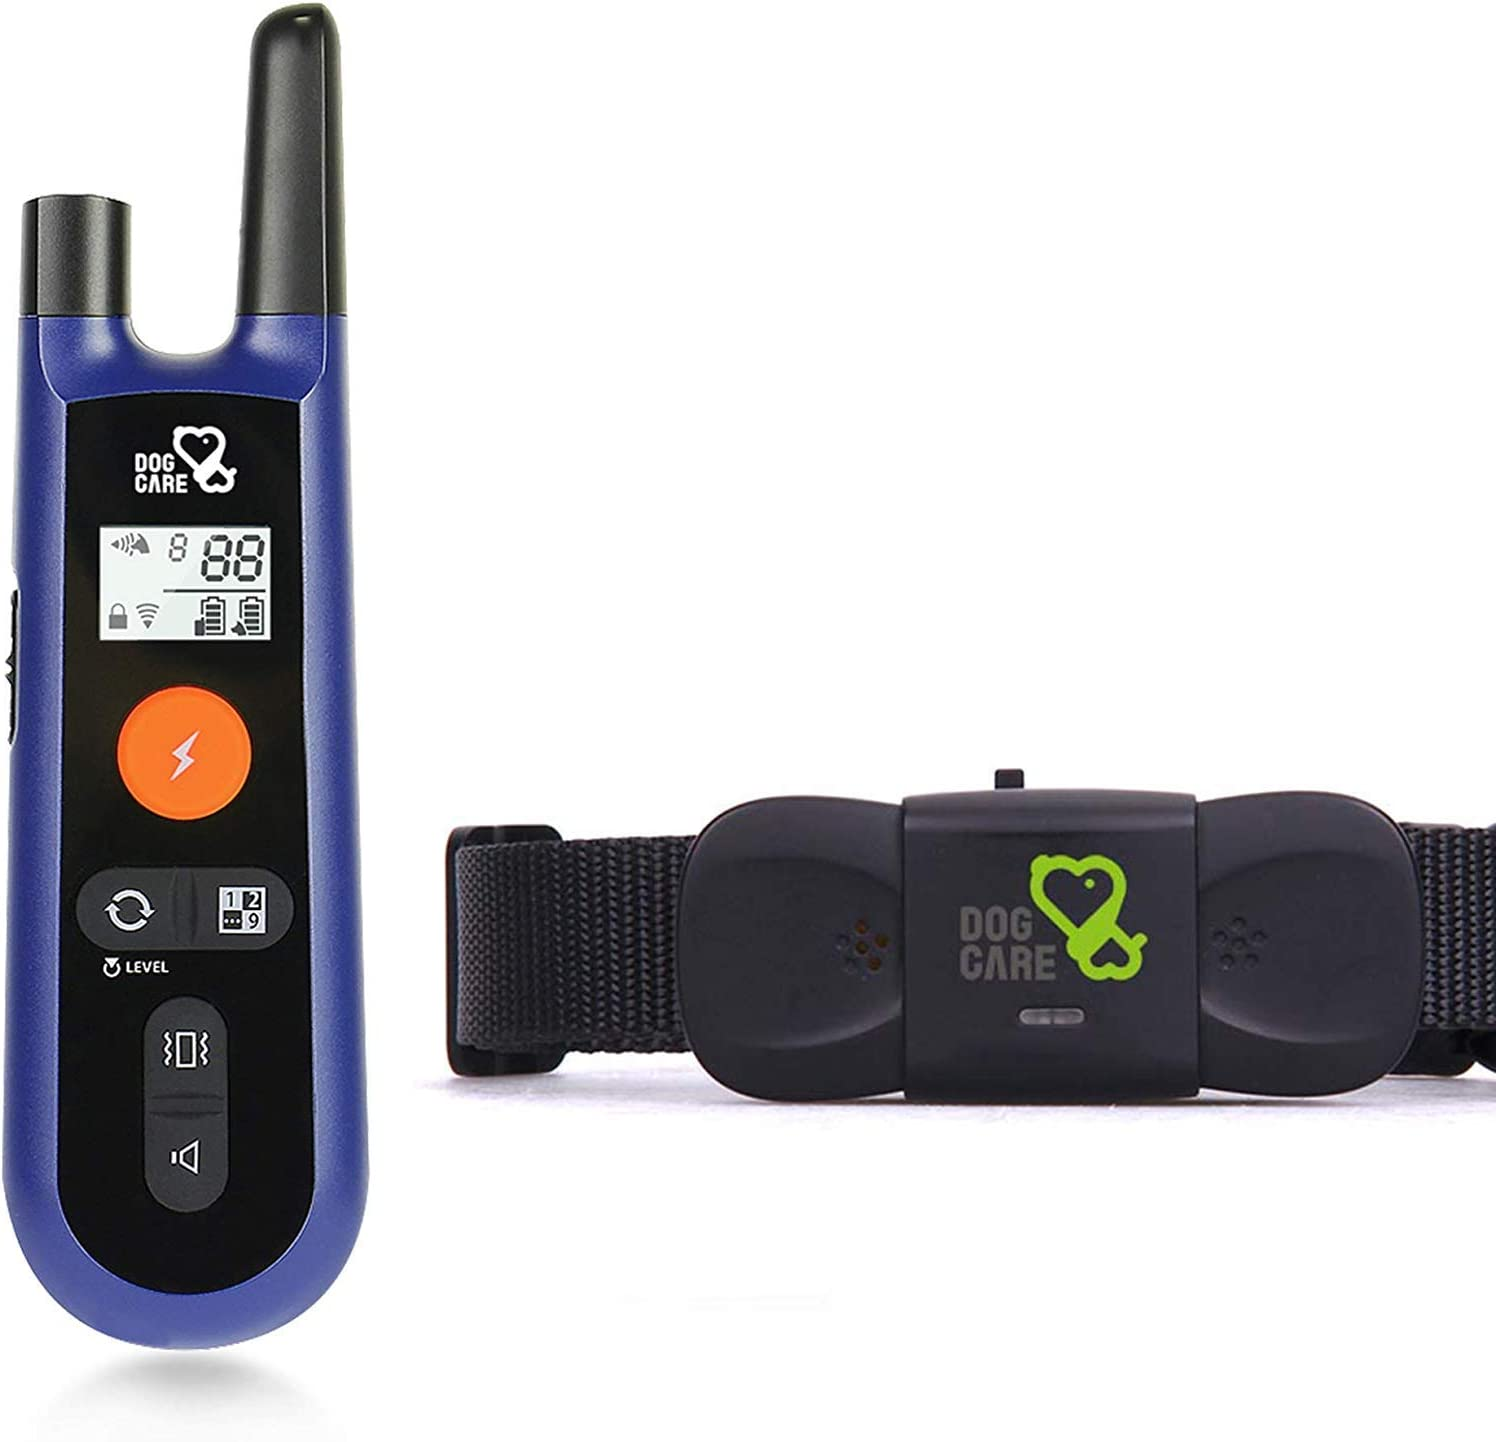 1. Dog Care Rechargeable Dog Shock Collar